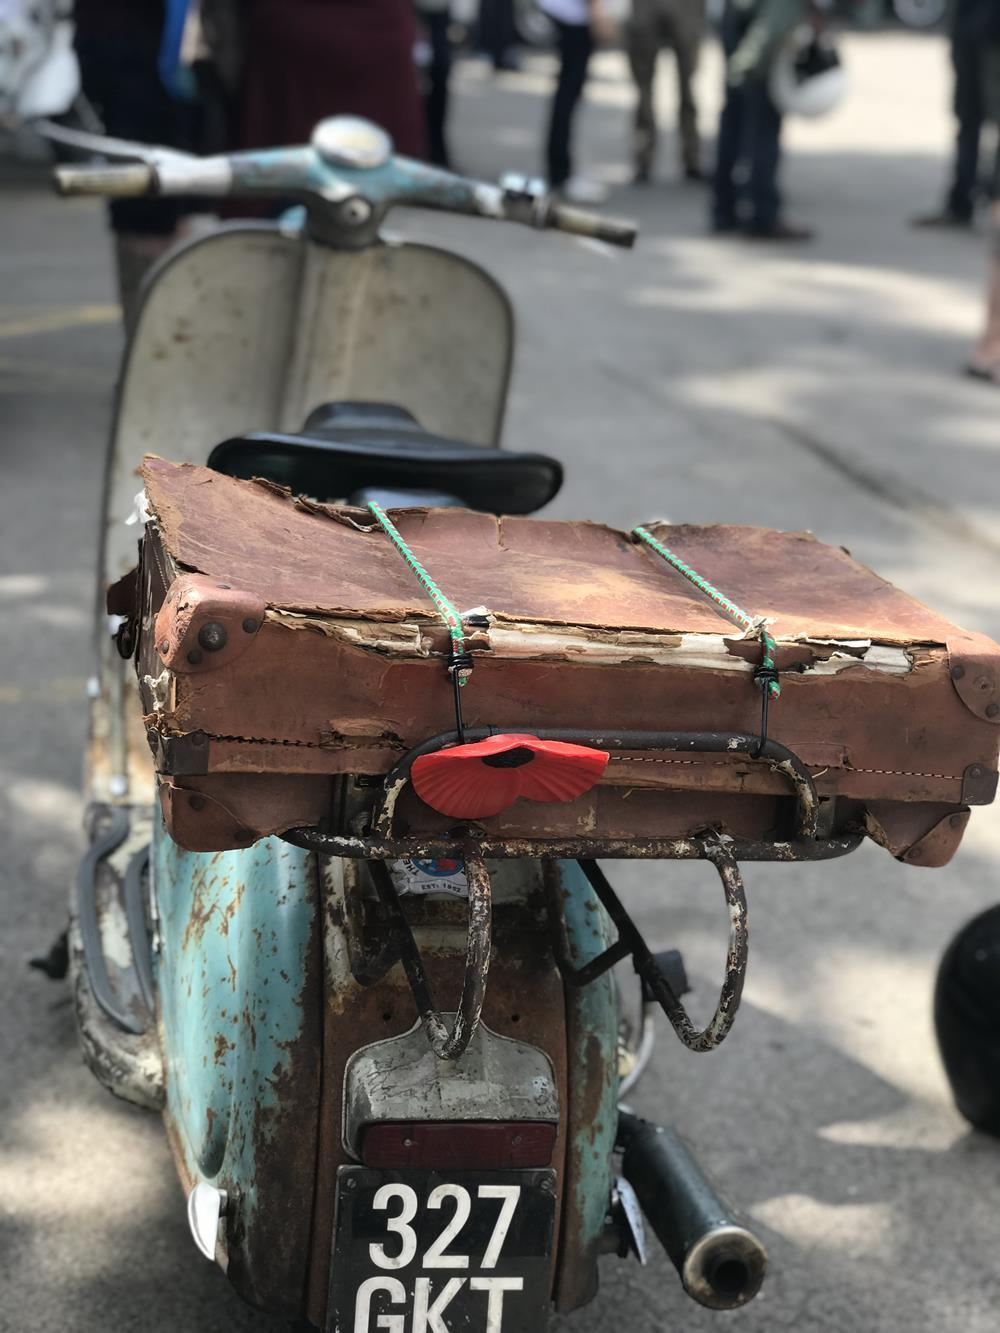 Series 1 Lambretta with suitcase strapped to the back